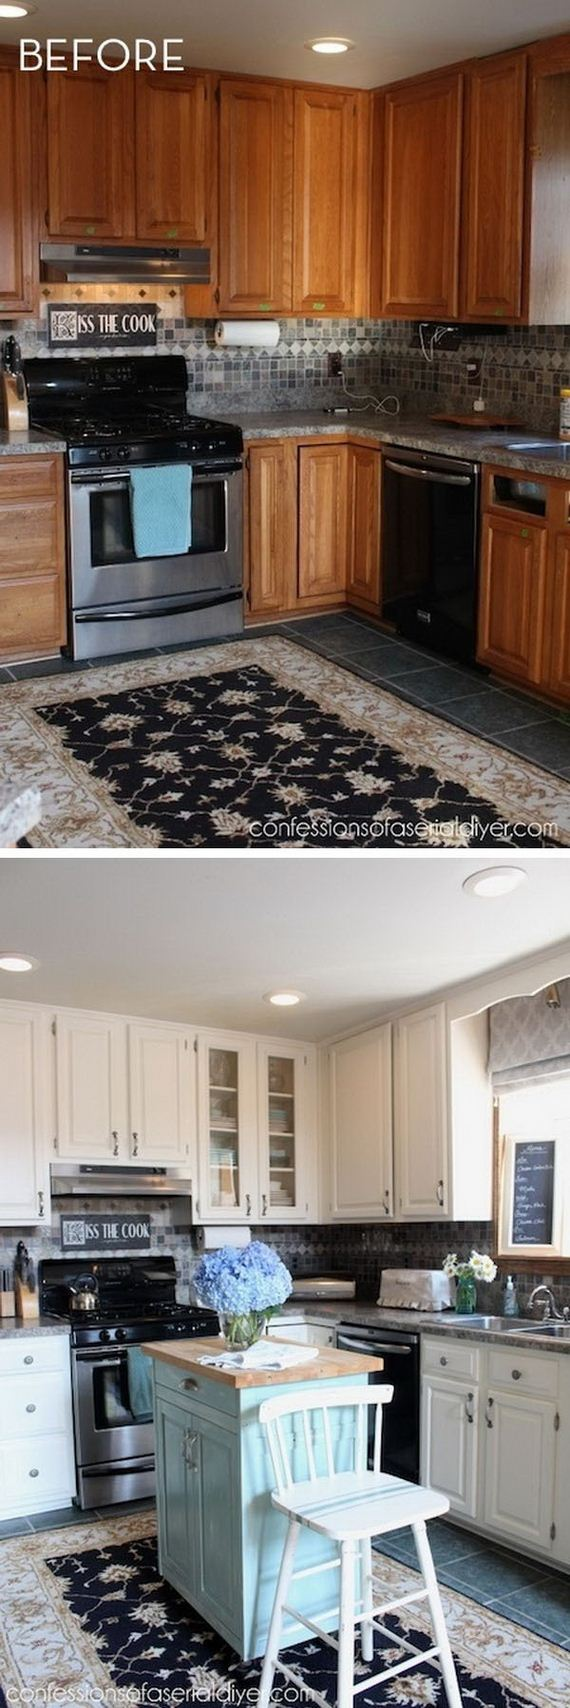 19-before-after-kitchen-makeover